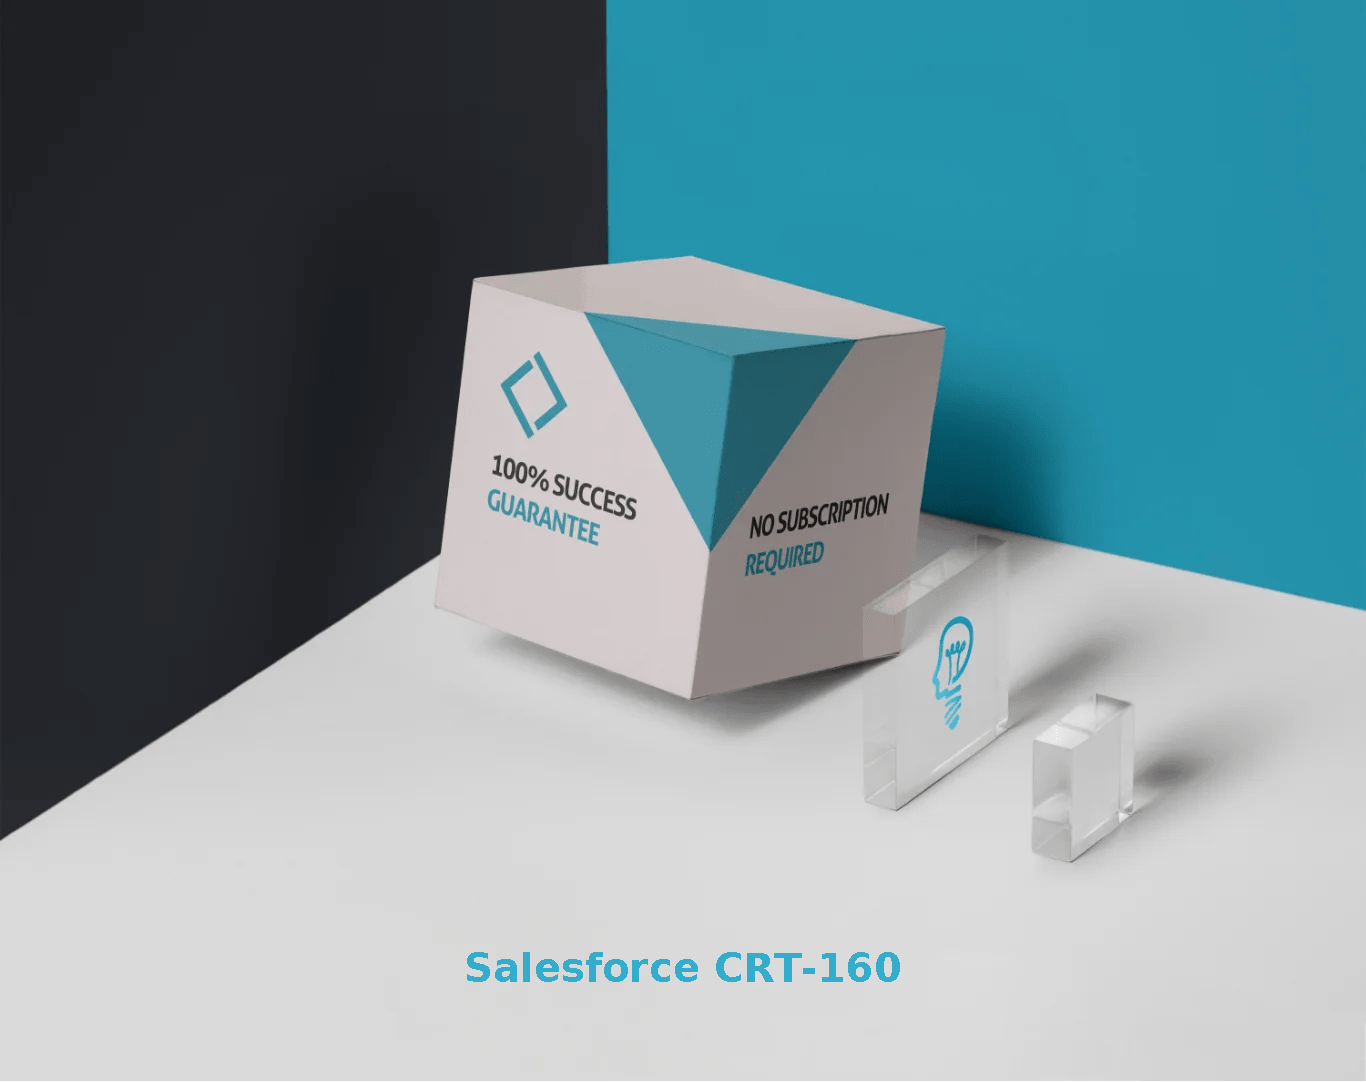 Salesforce CRT-160 Exams